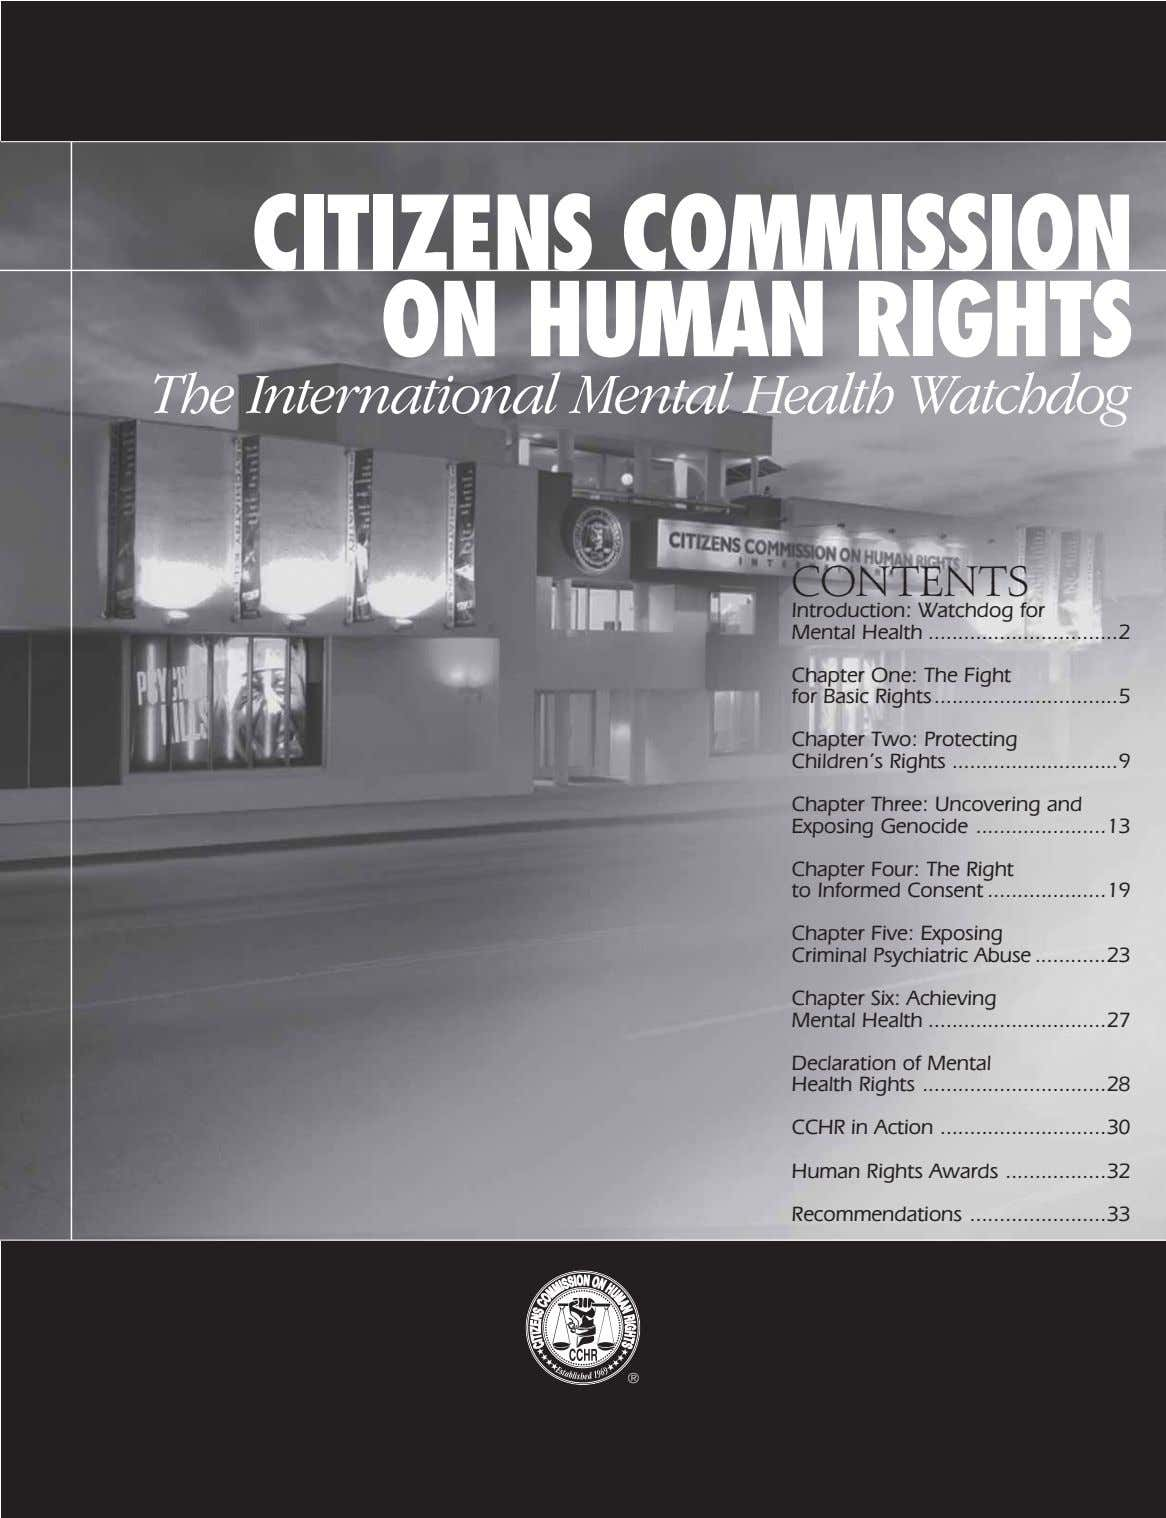 CITIZENS COMMISSION ON HUMAN RIGHTS The International Mental Health Watchdog CONTENTS Introduction: Watchdog for Mental Health